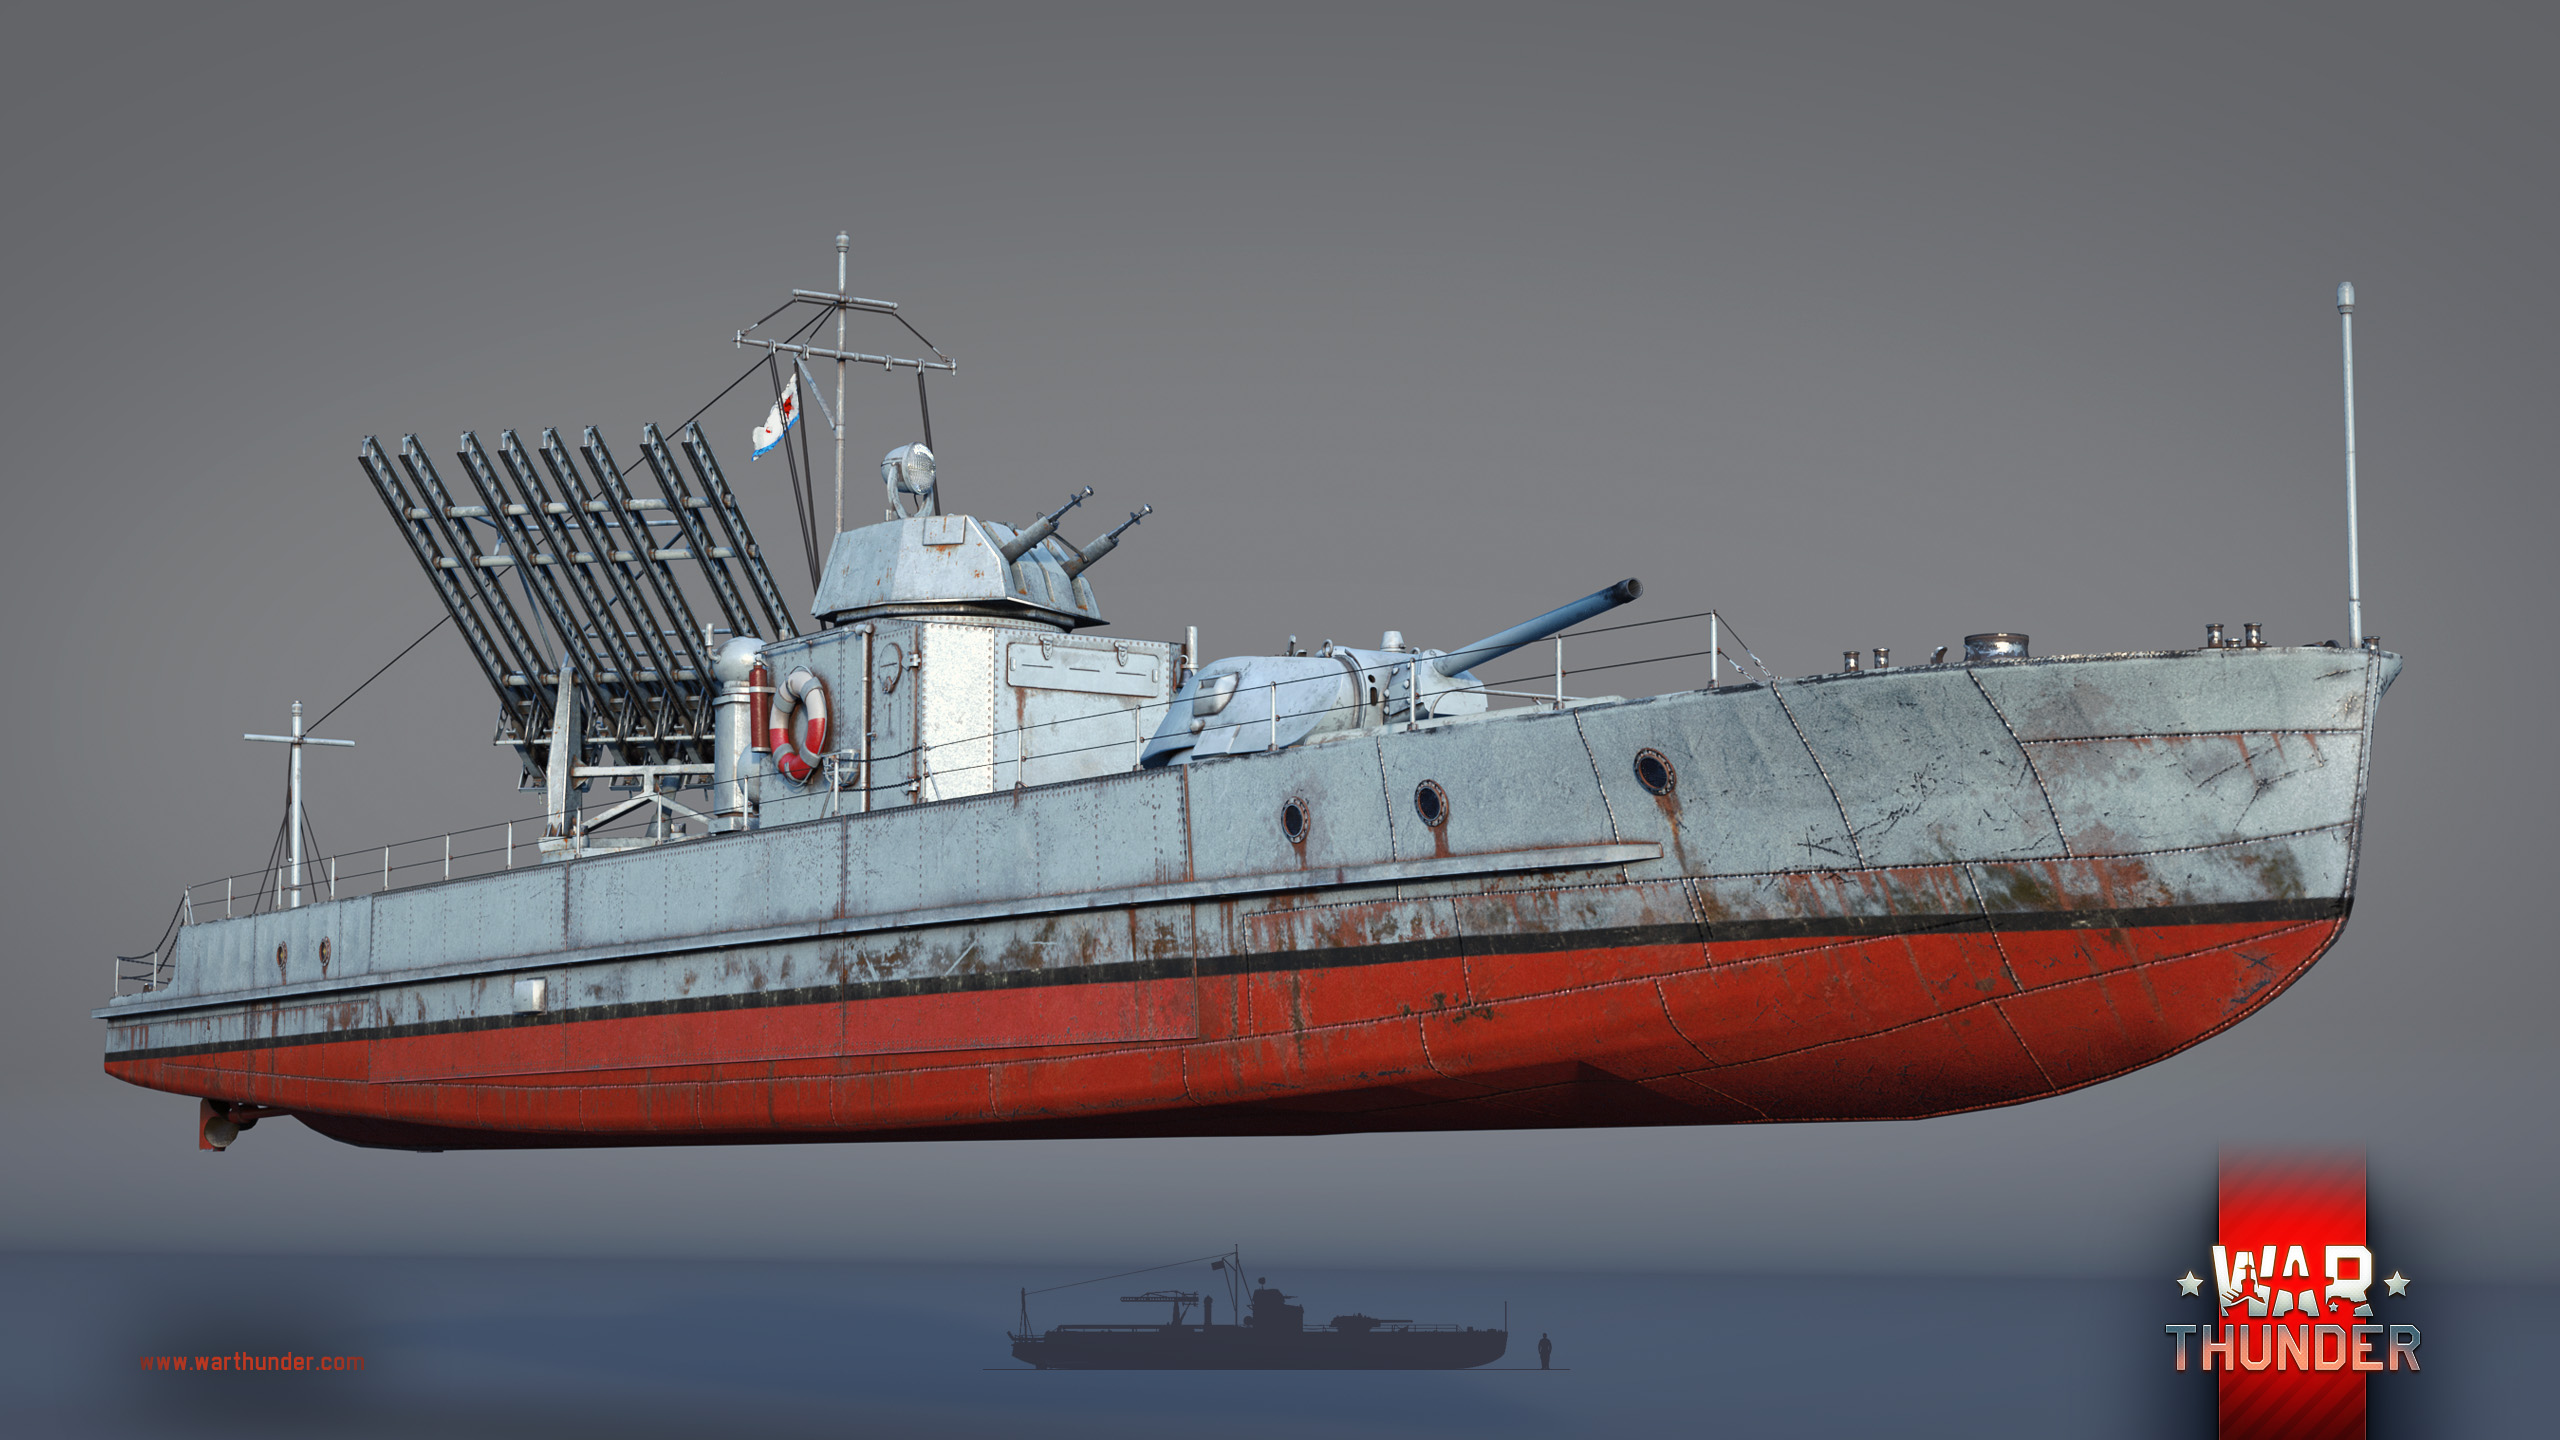 [Development] Project 1124 Armored River Boat: Waterborne Katyusha - News -  War Thunder